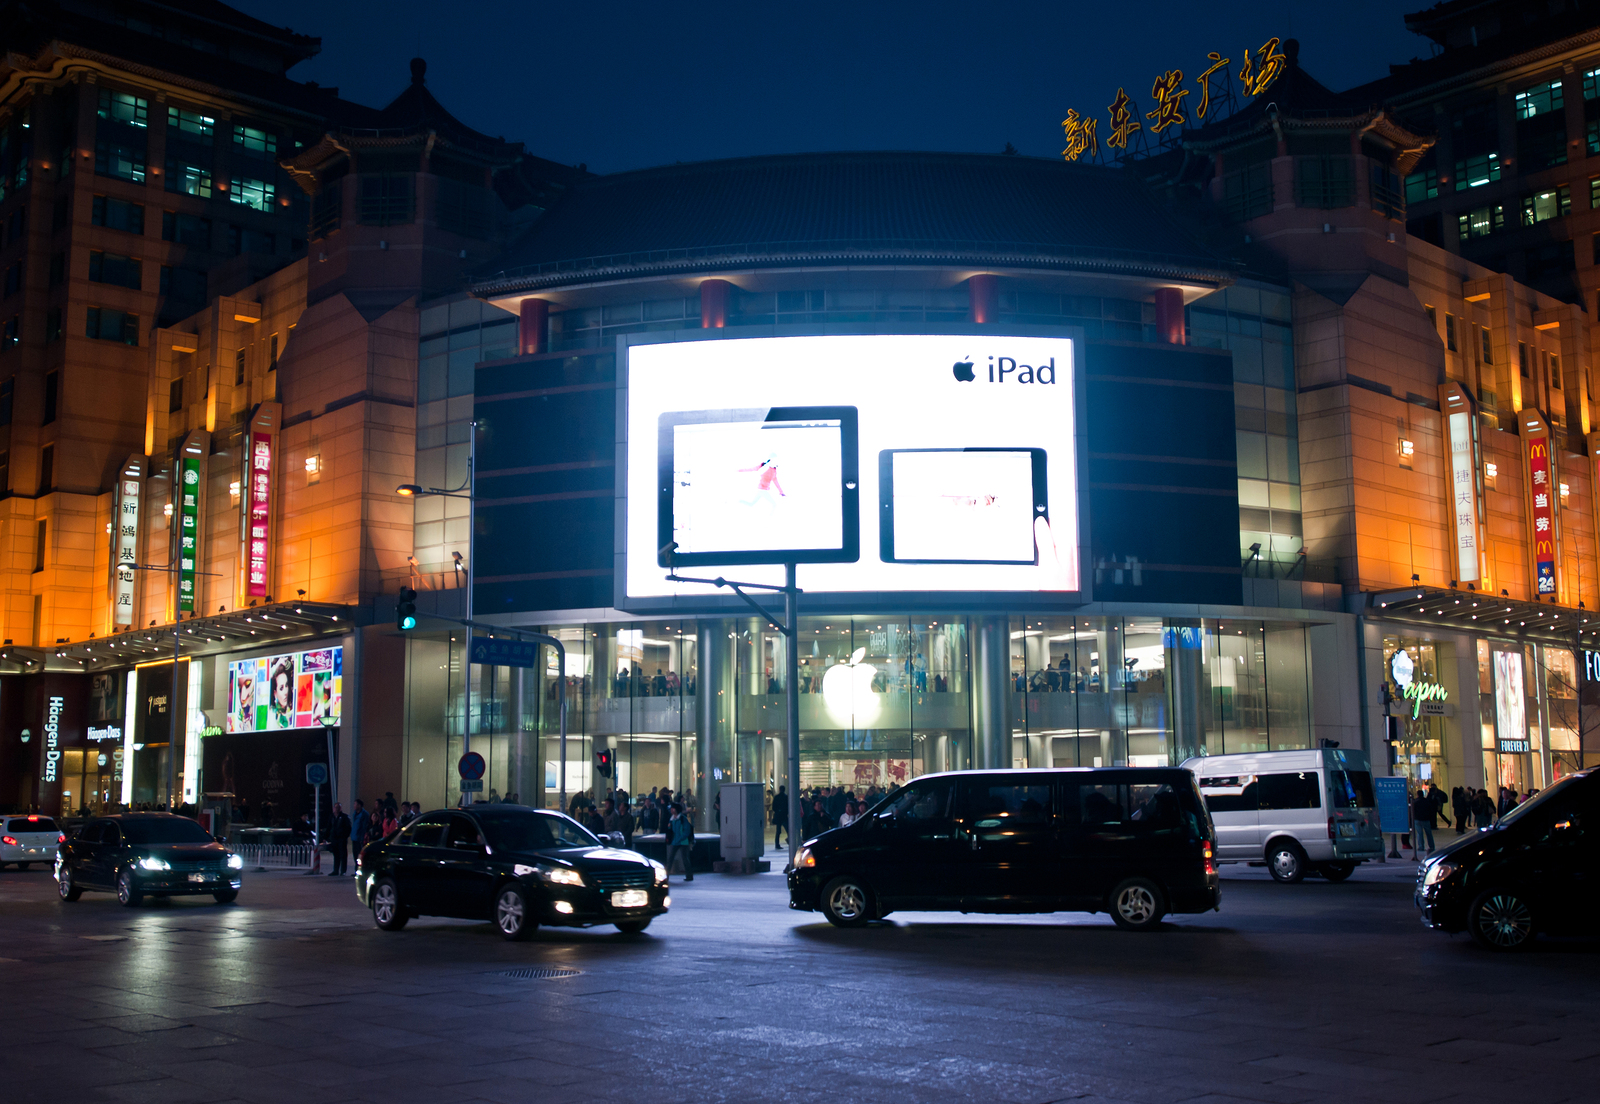 Malls Invest In Digital Signage